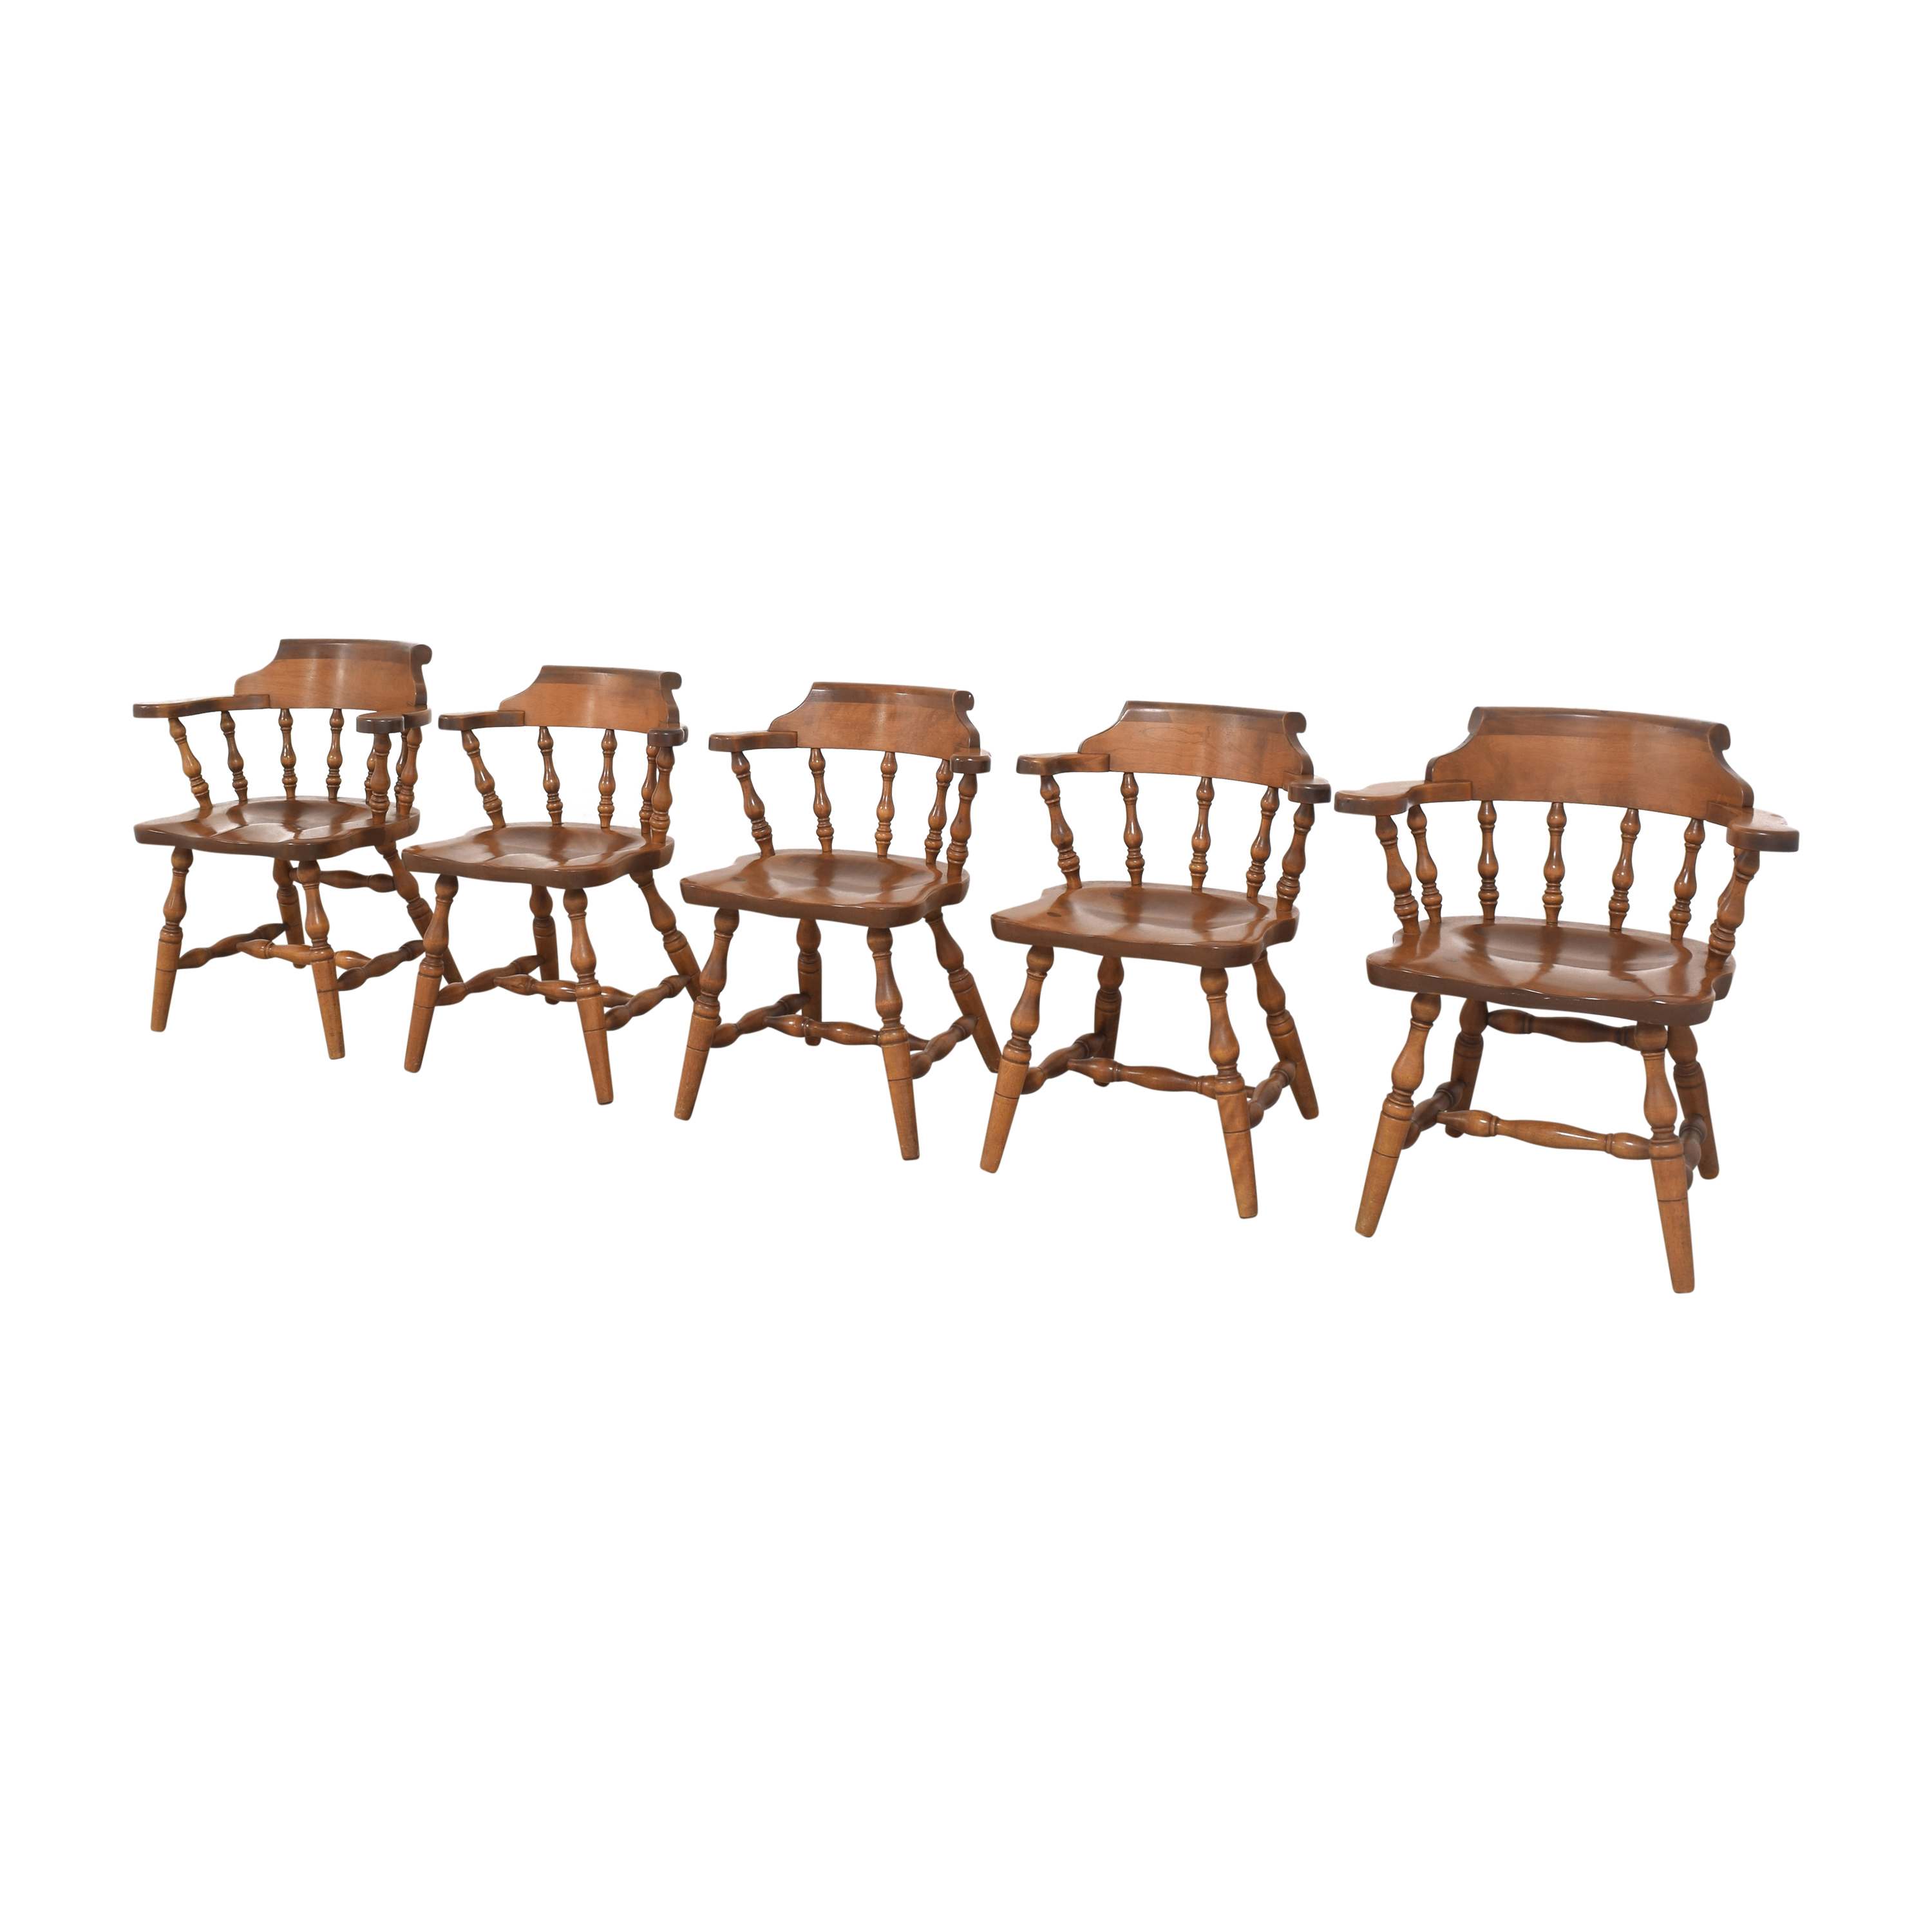 S. Bent & Bros Colonial Windsor Captain's Chairs / Chairs